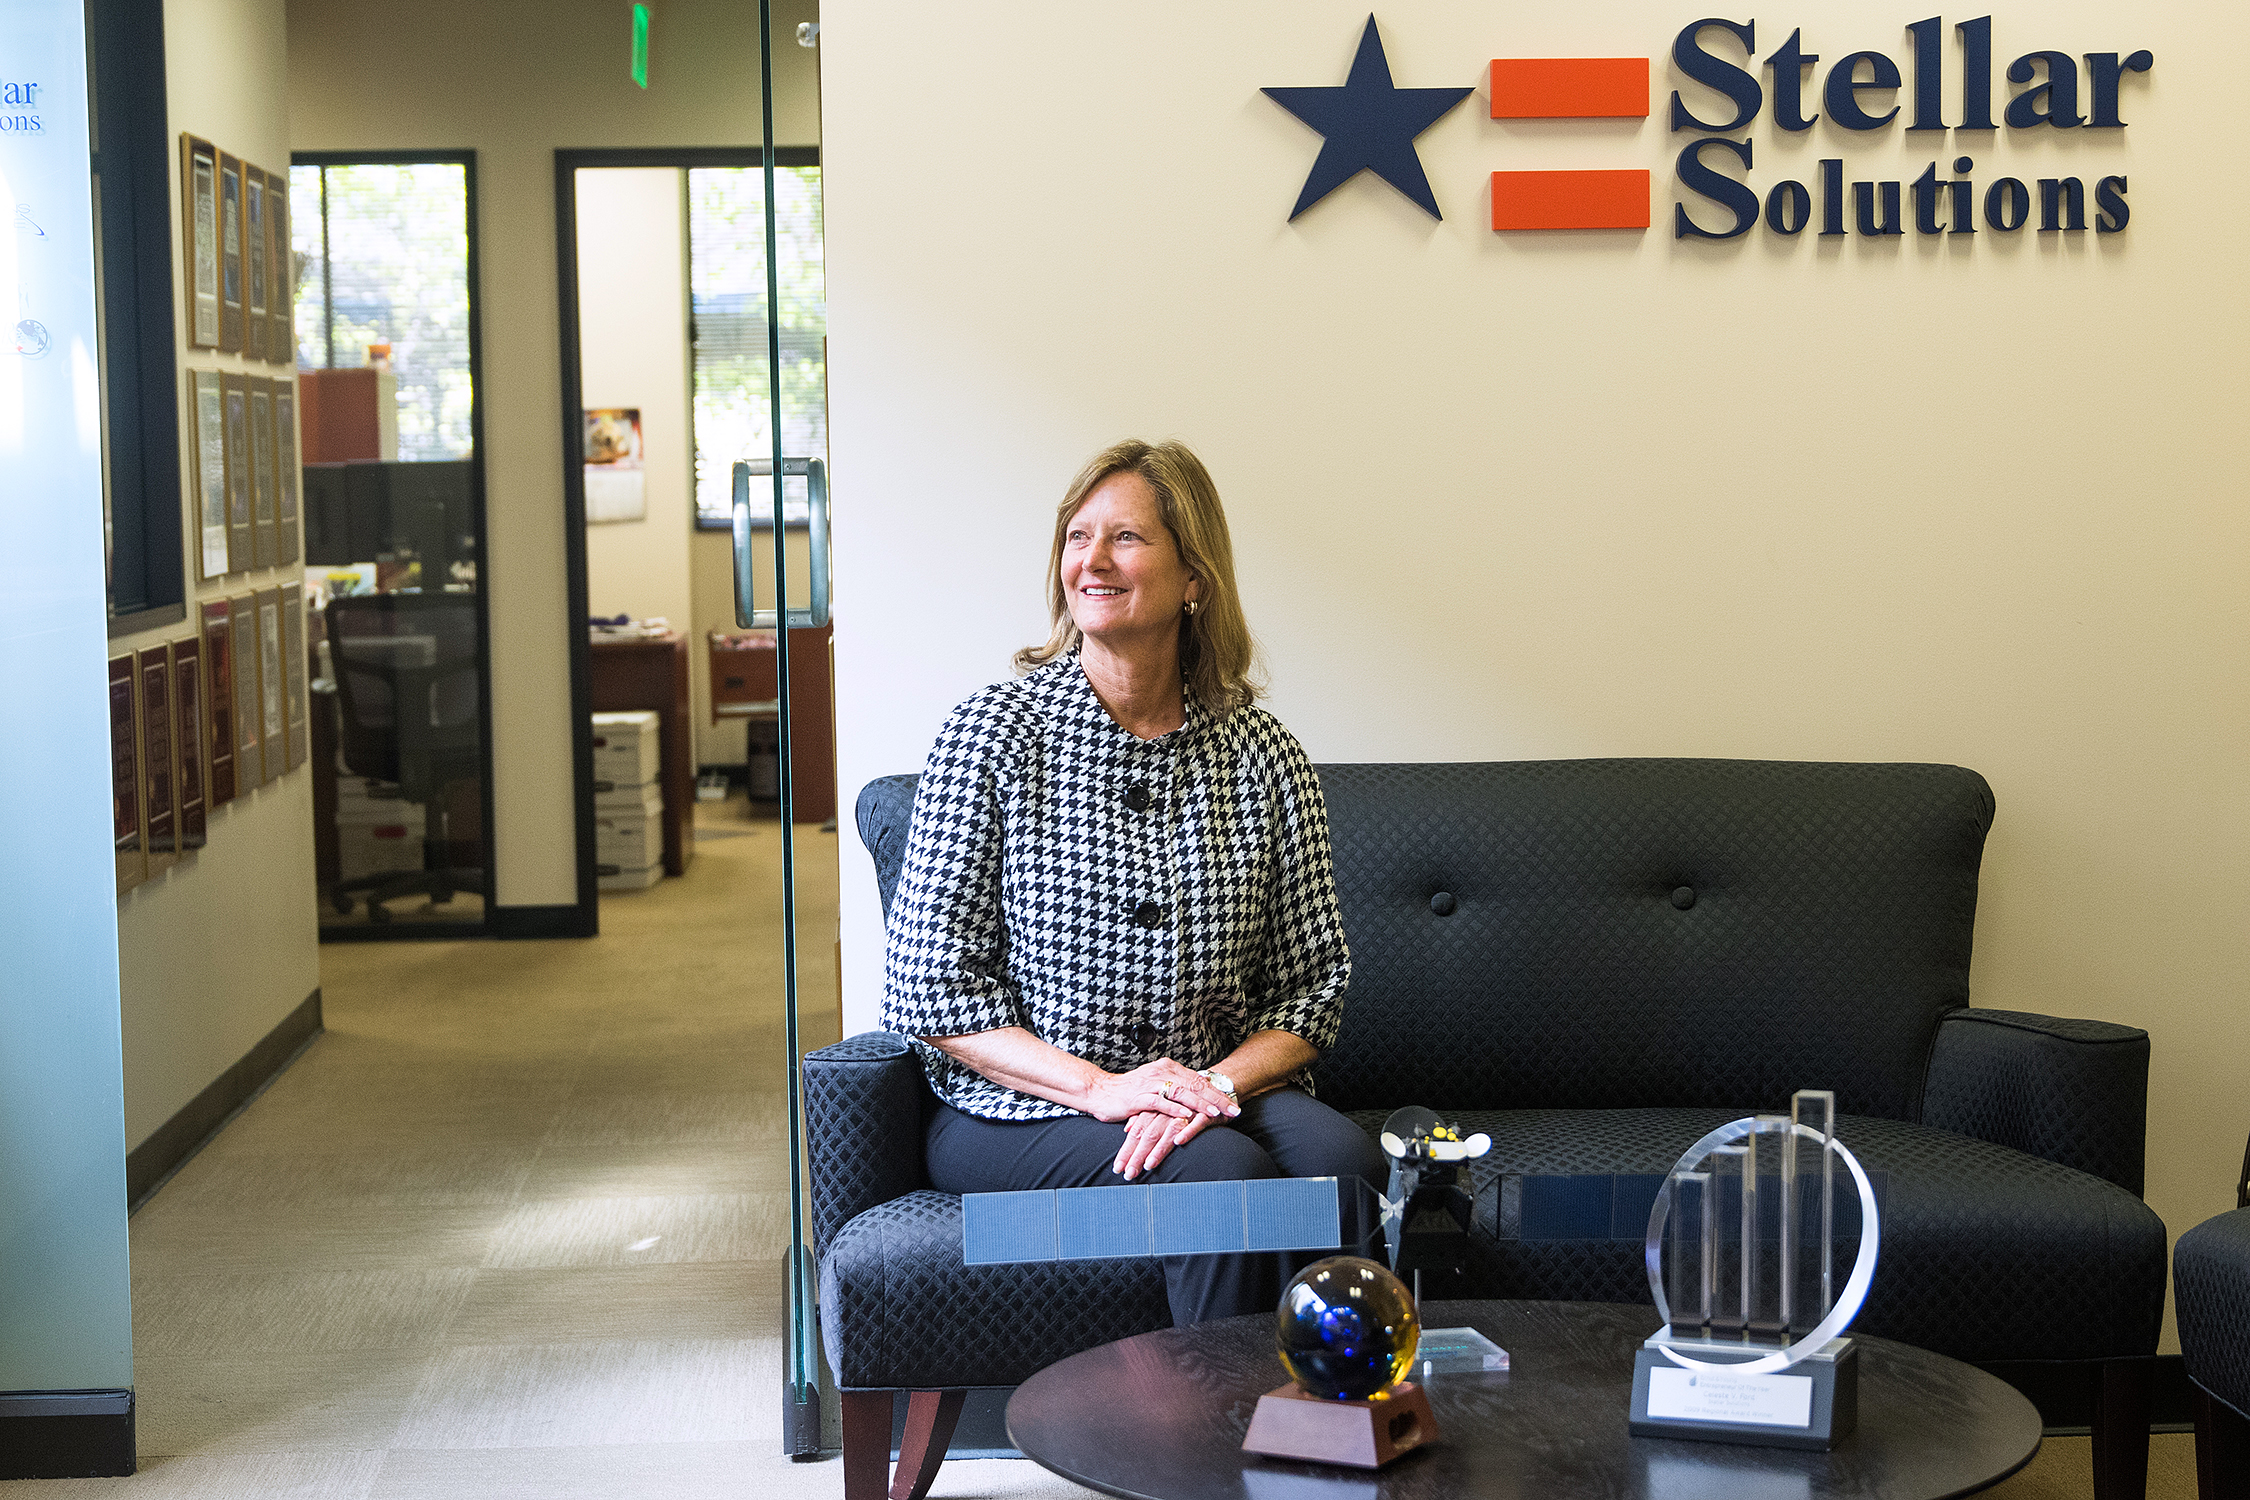 Celeste Ford, founder and CEO of Stellar Solutions, sits in the Palo Alto company's lobby on March 7, 2018. Stellar Solutions provides engineering consulting in the aerospace industry.